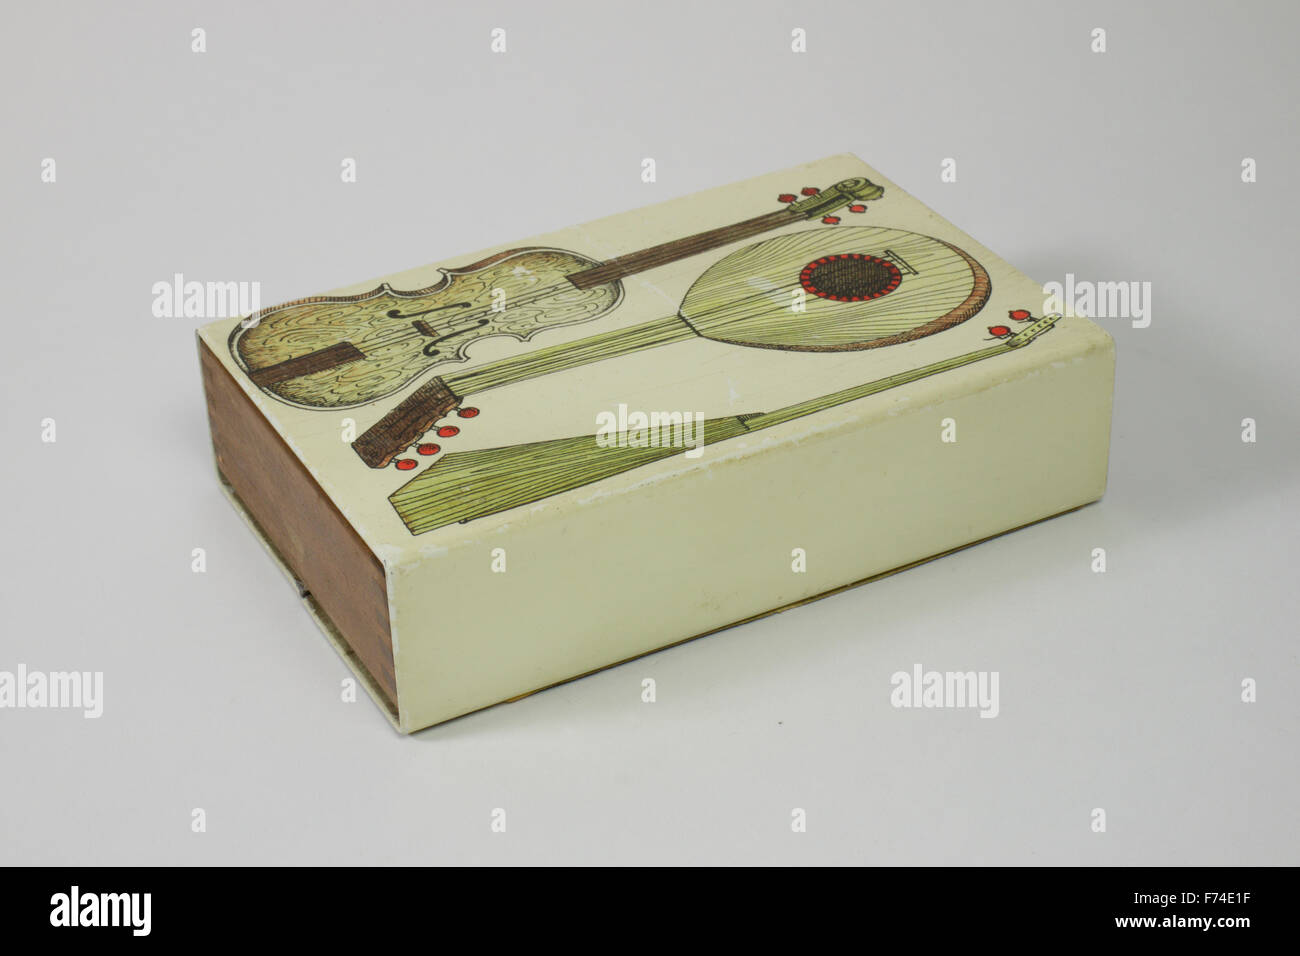 Fornasetti box with sliding mahogany interior, top decorated with three musical instruments. The box measures 14cm - Stock Image